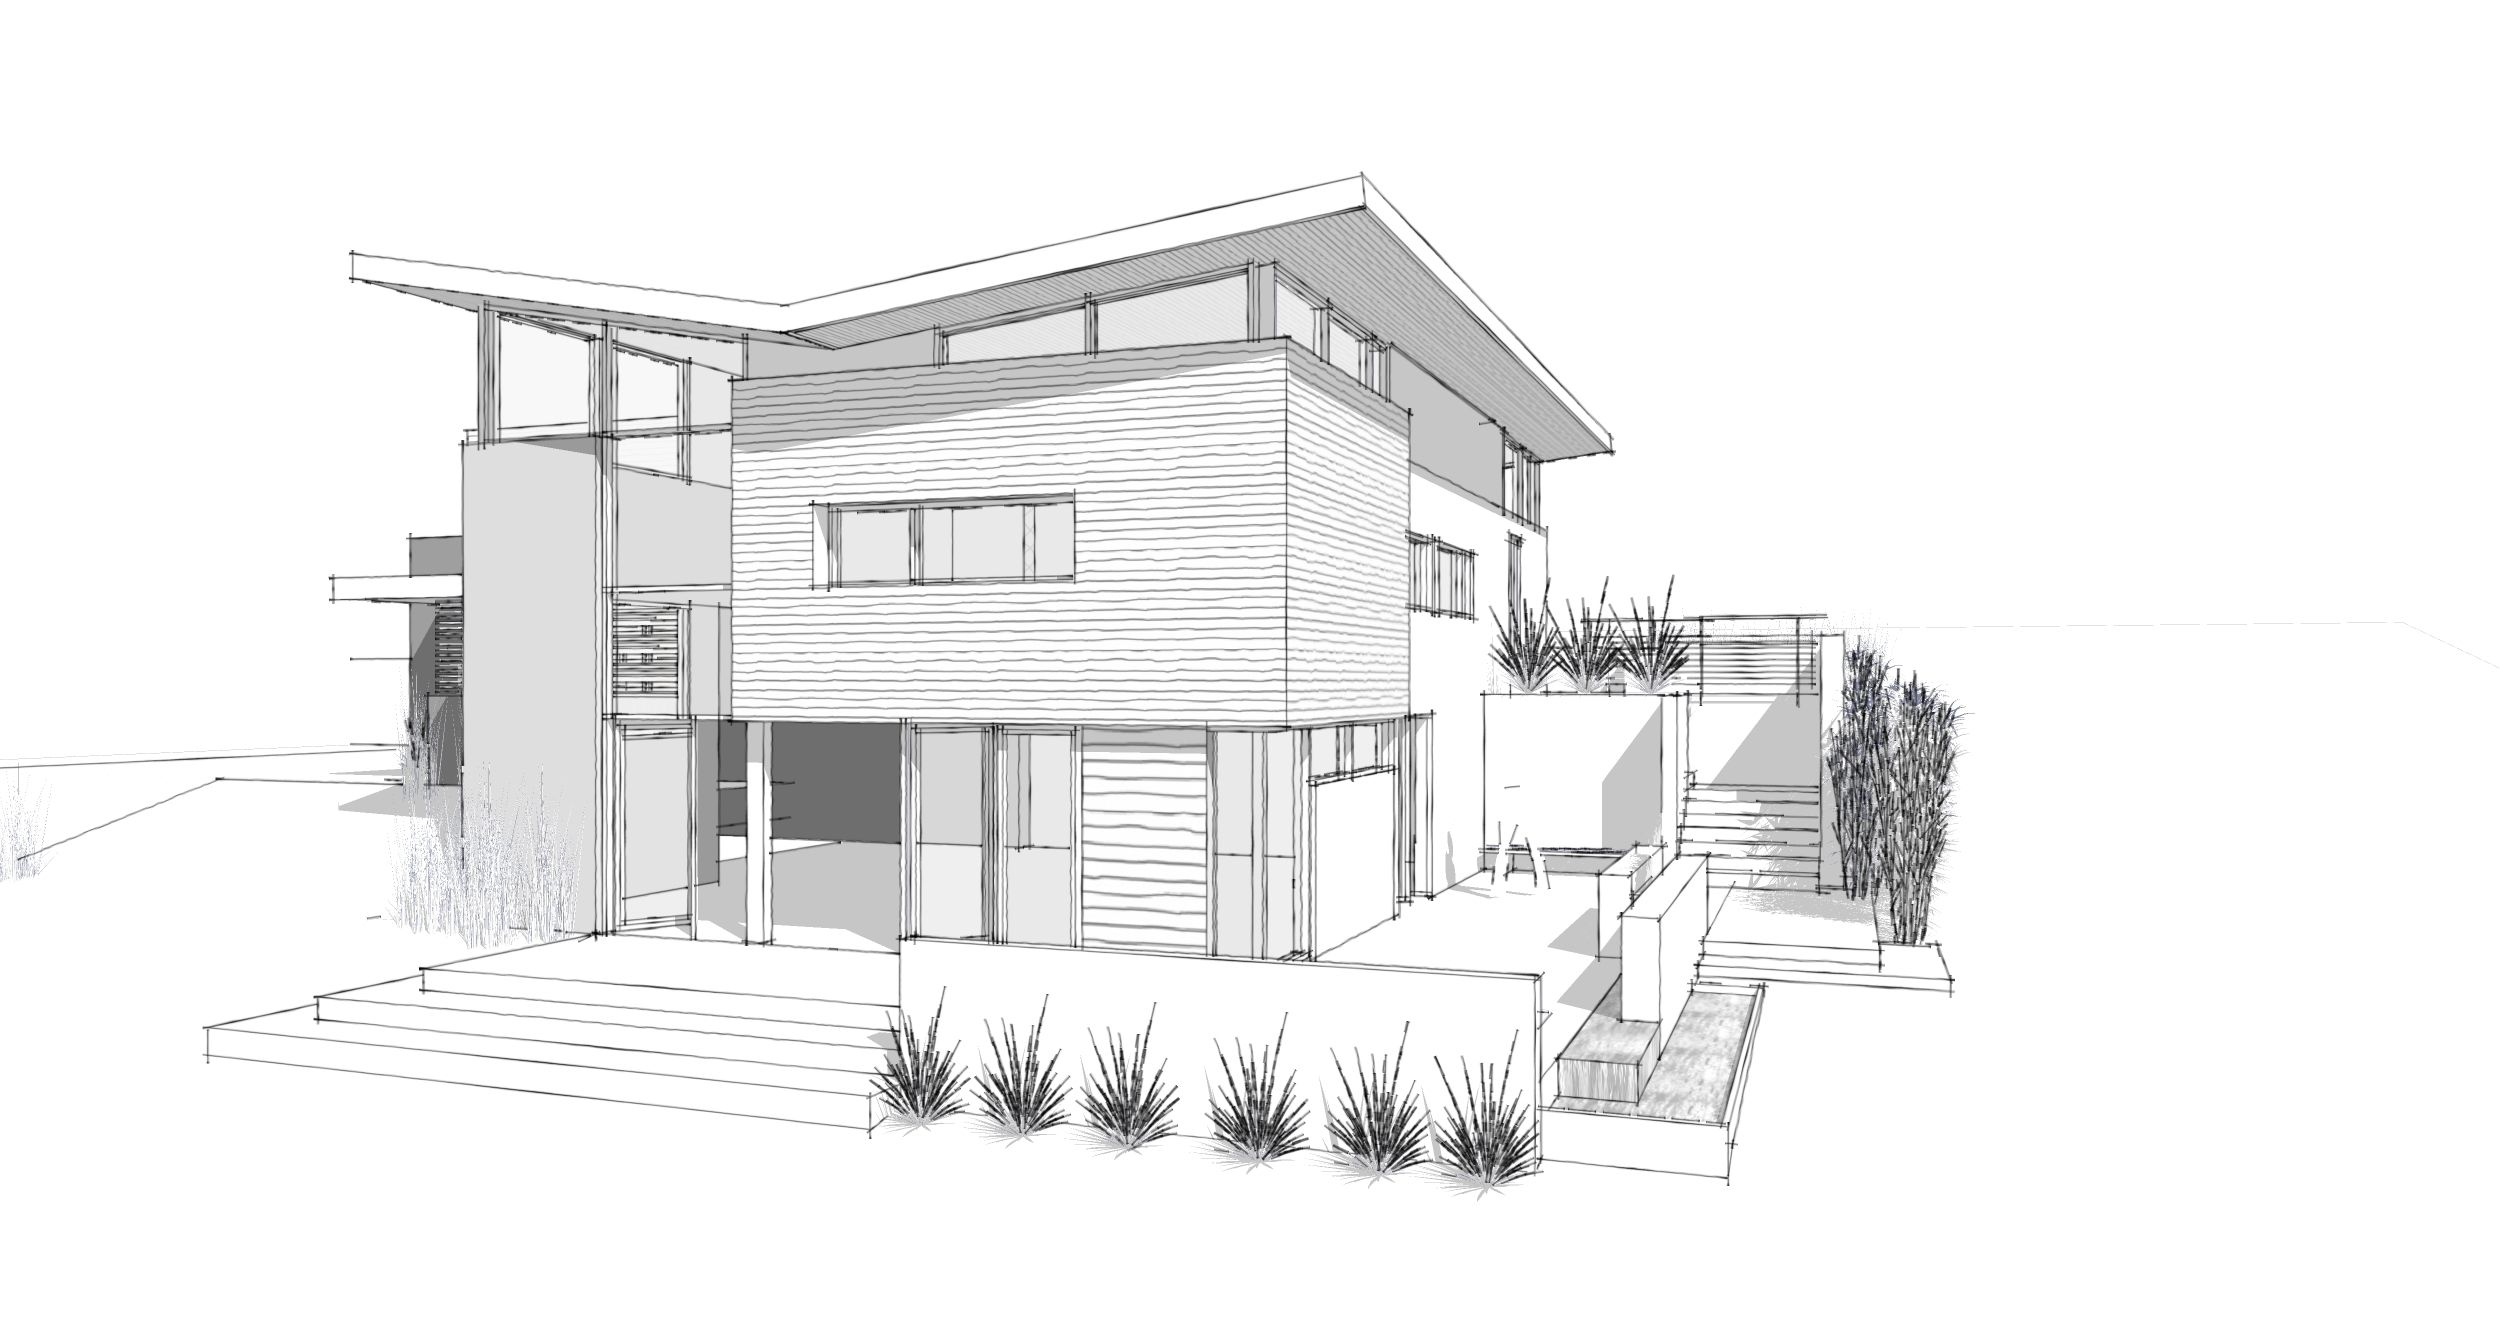 Home Design Sketch Architectural House Sketch Google Search Architecture House